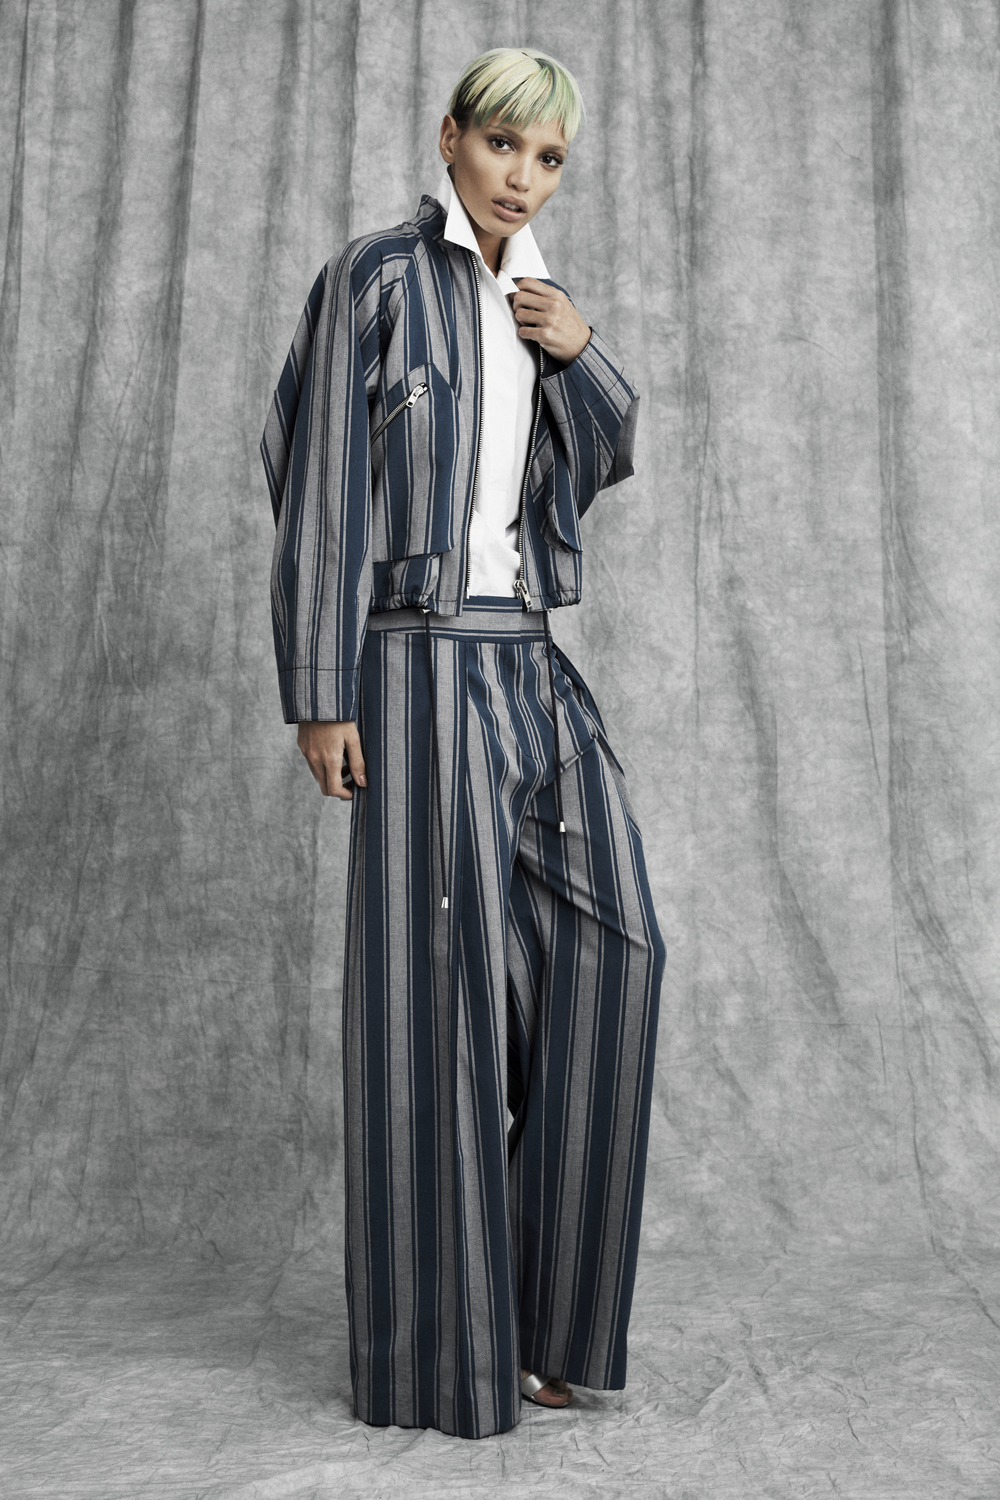 VICTOR_ALFARO_PreSpring17_Look_18_by_Jeremy_Williams.jpg